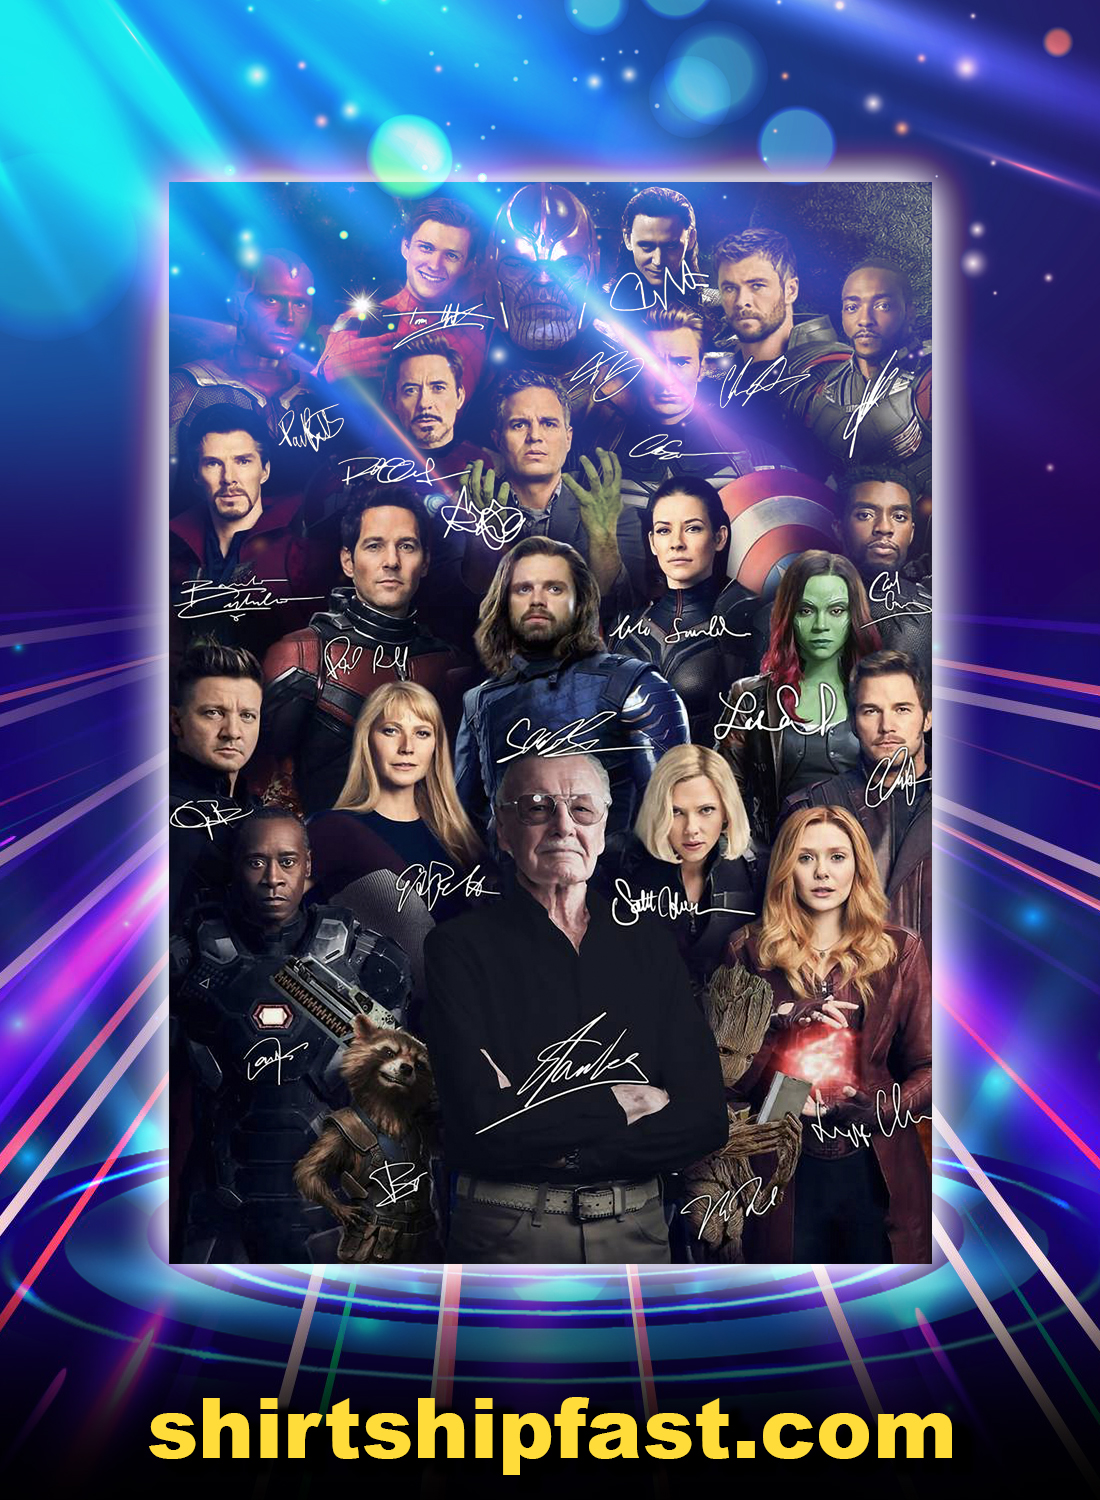 Stan lee avengers signature poster - A4